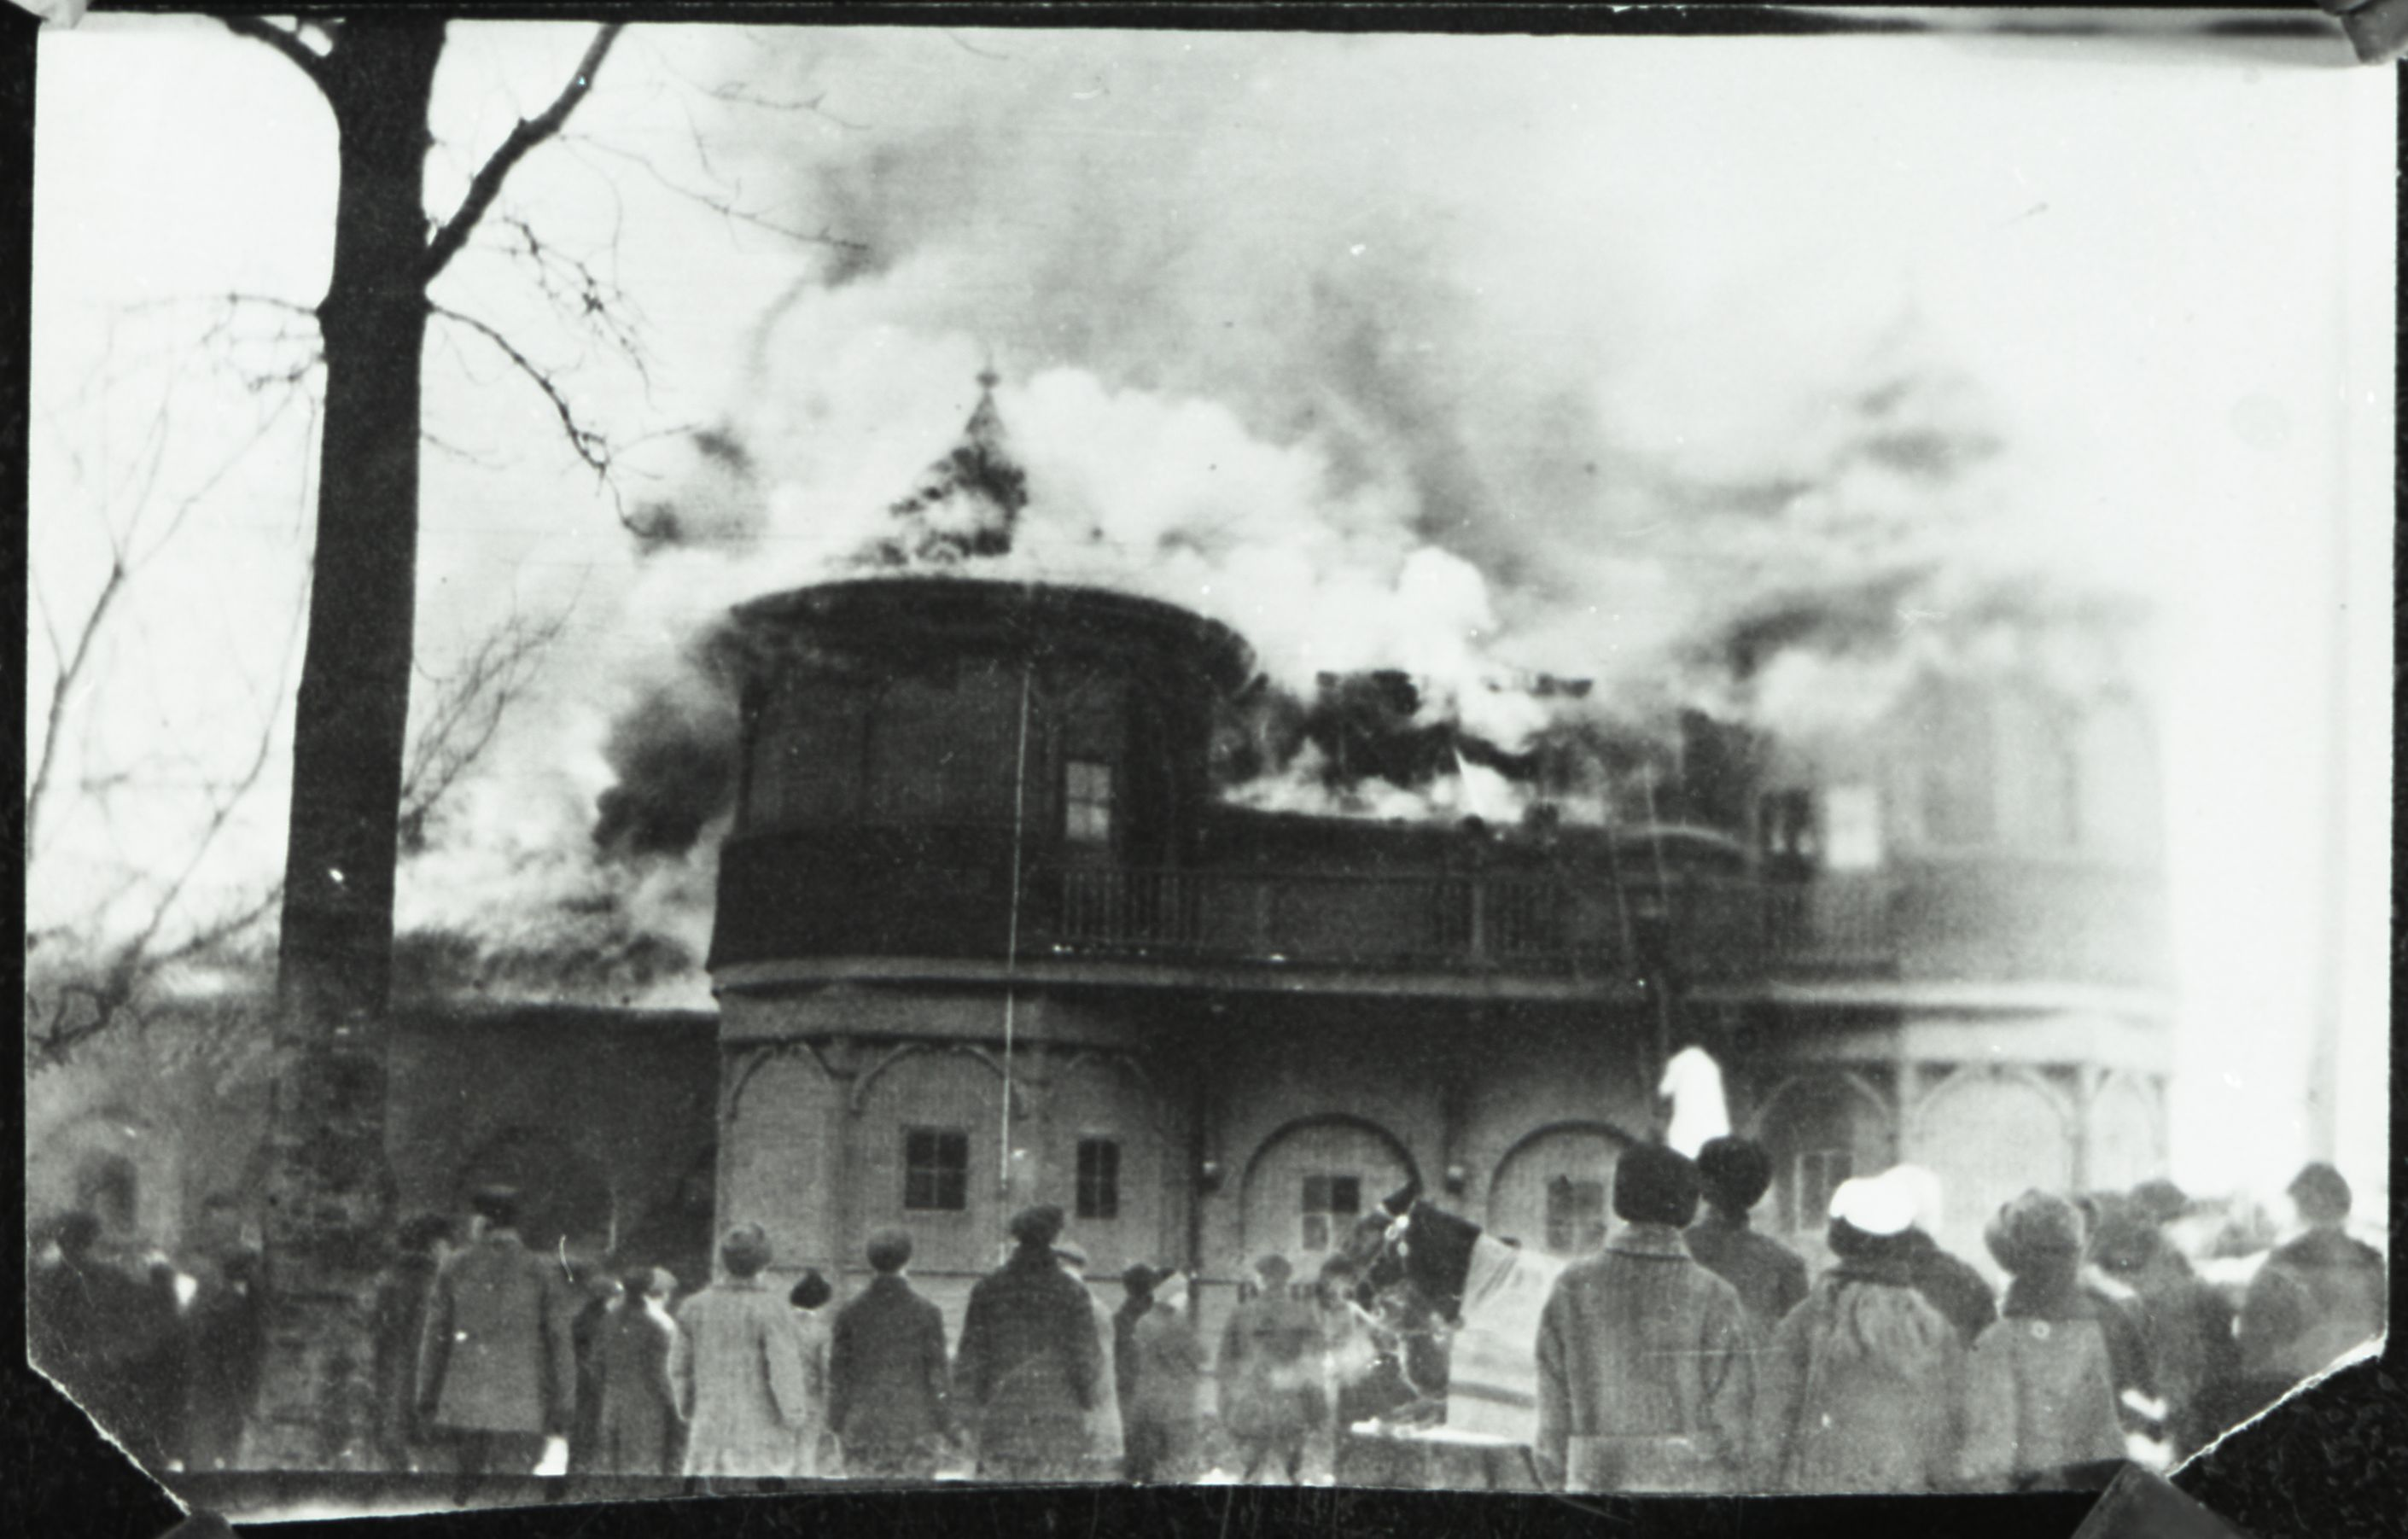 Black & white photo of the Victoria Park Pavilion on fire in 1916